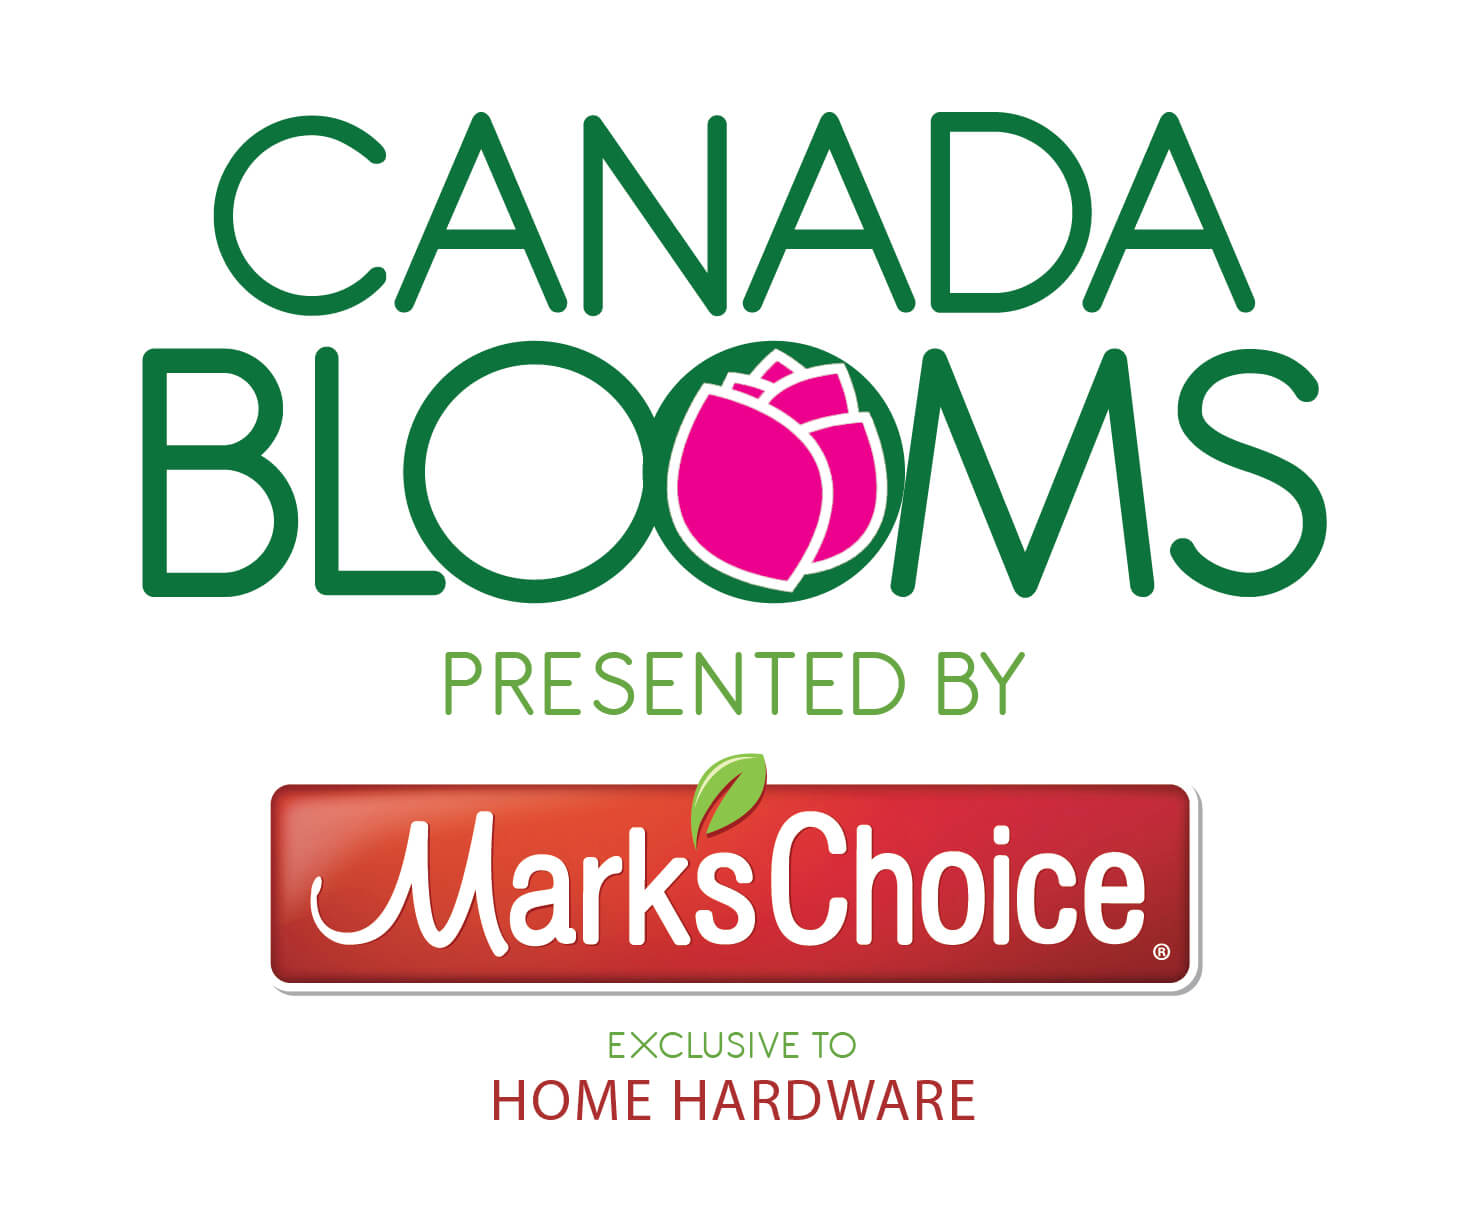 canada blooms mark's choice home hardware